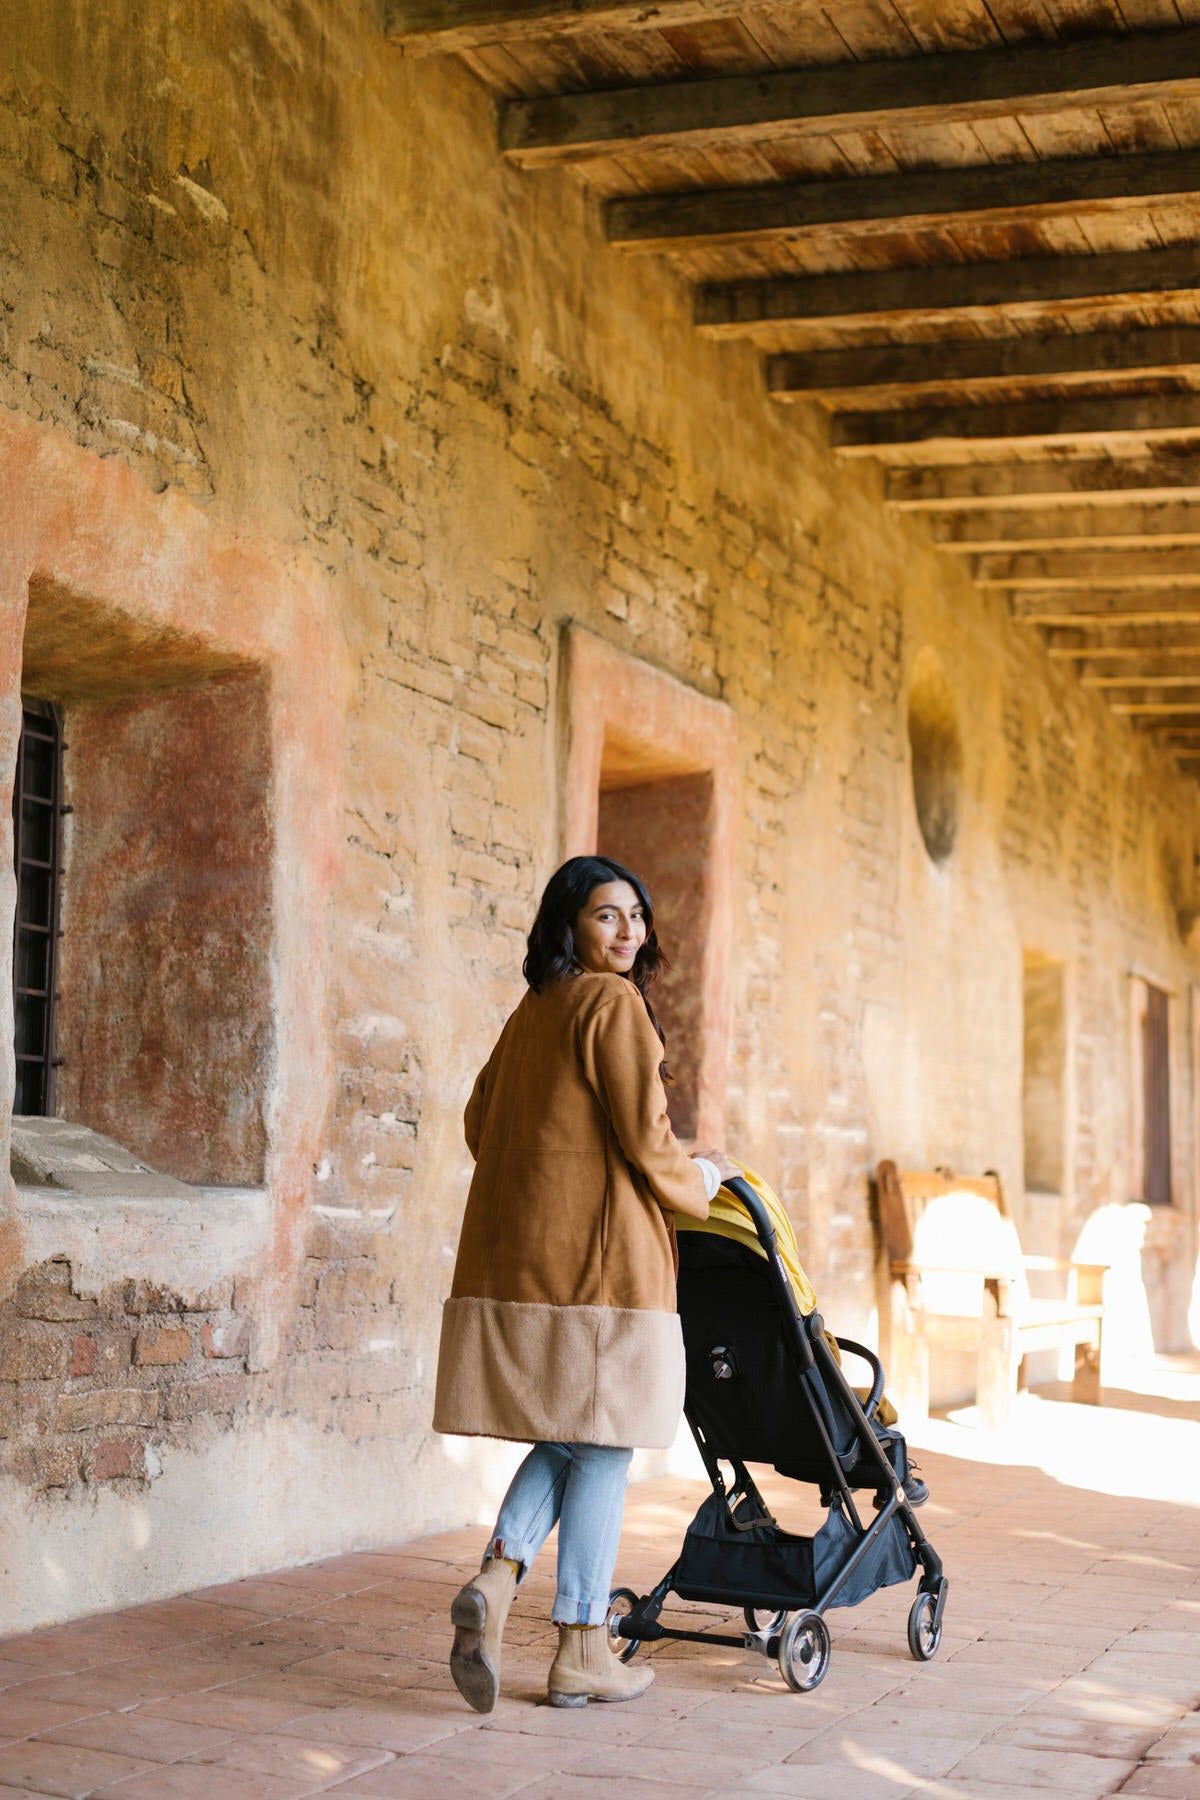 Valerie strolling through historic California Mission